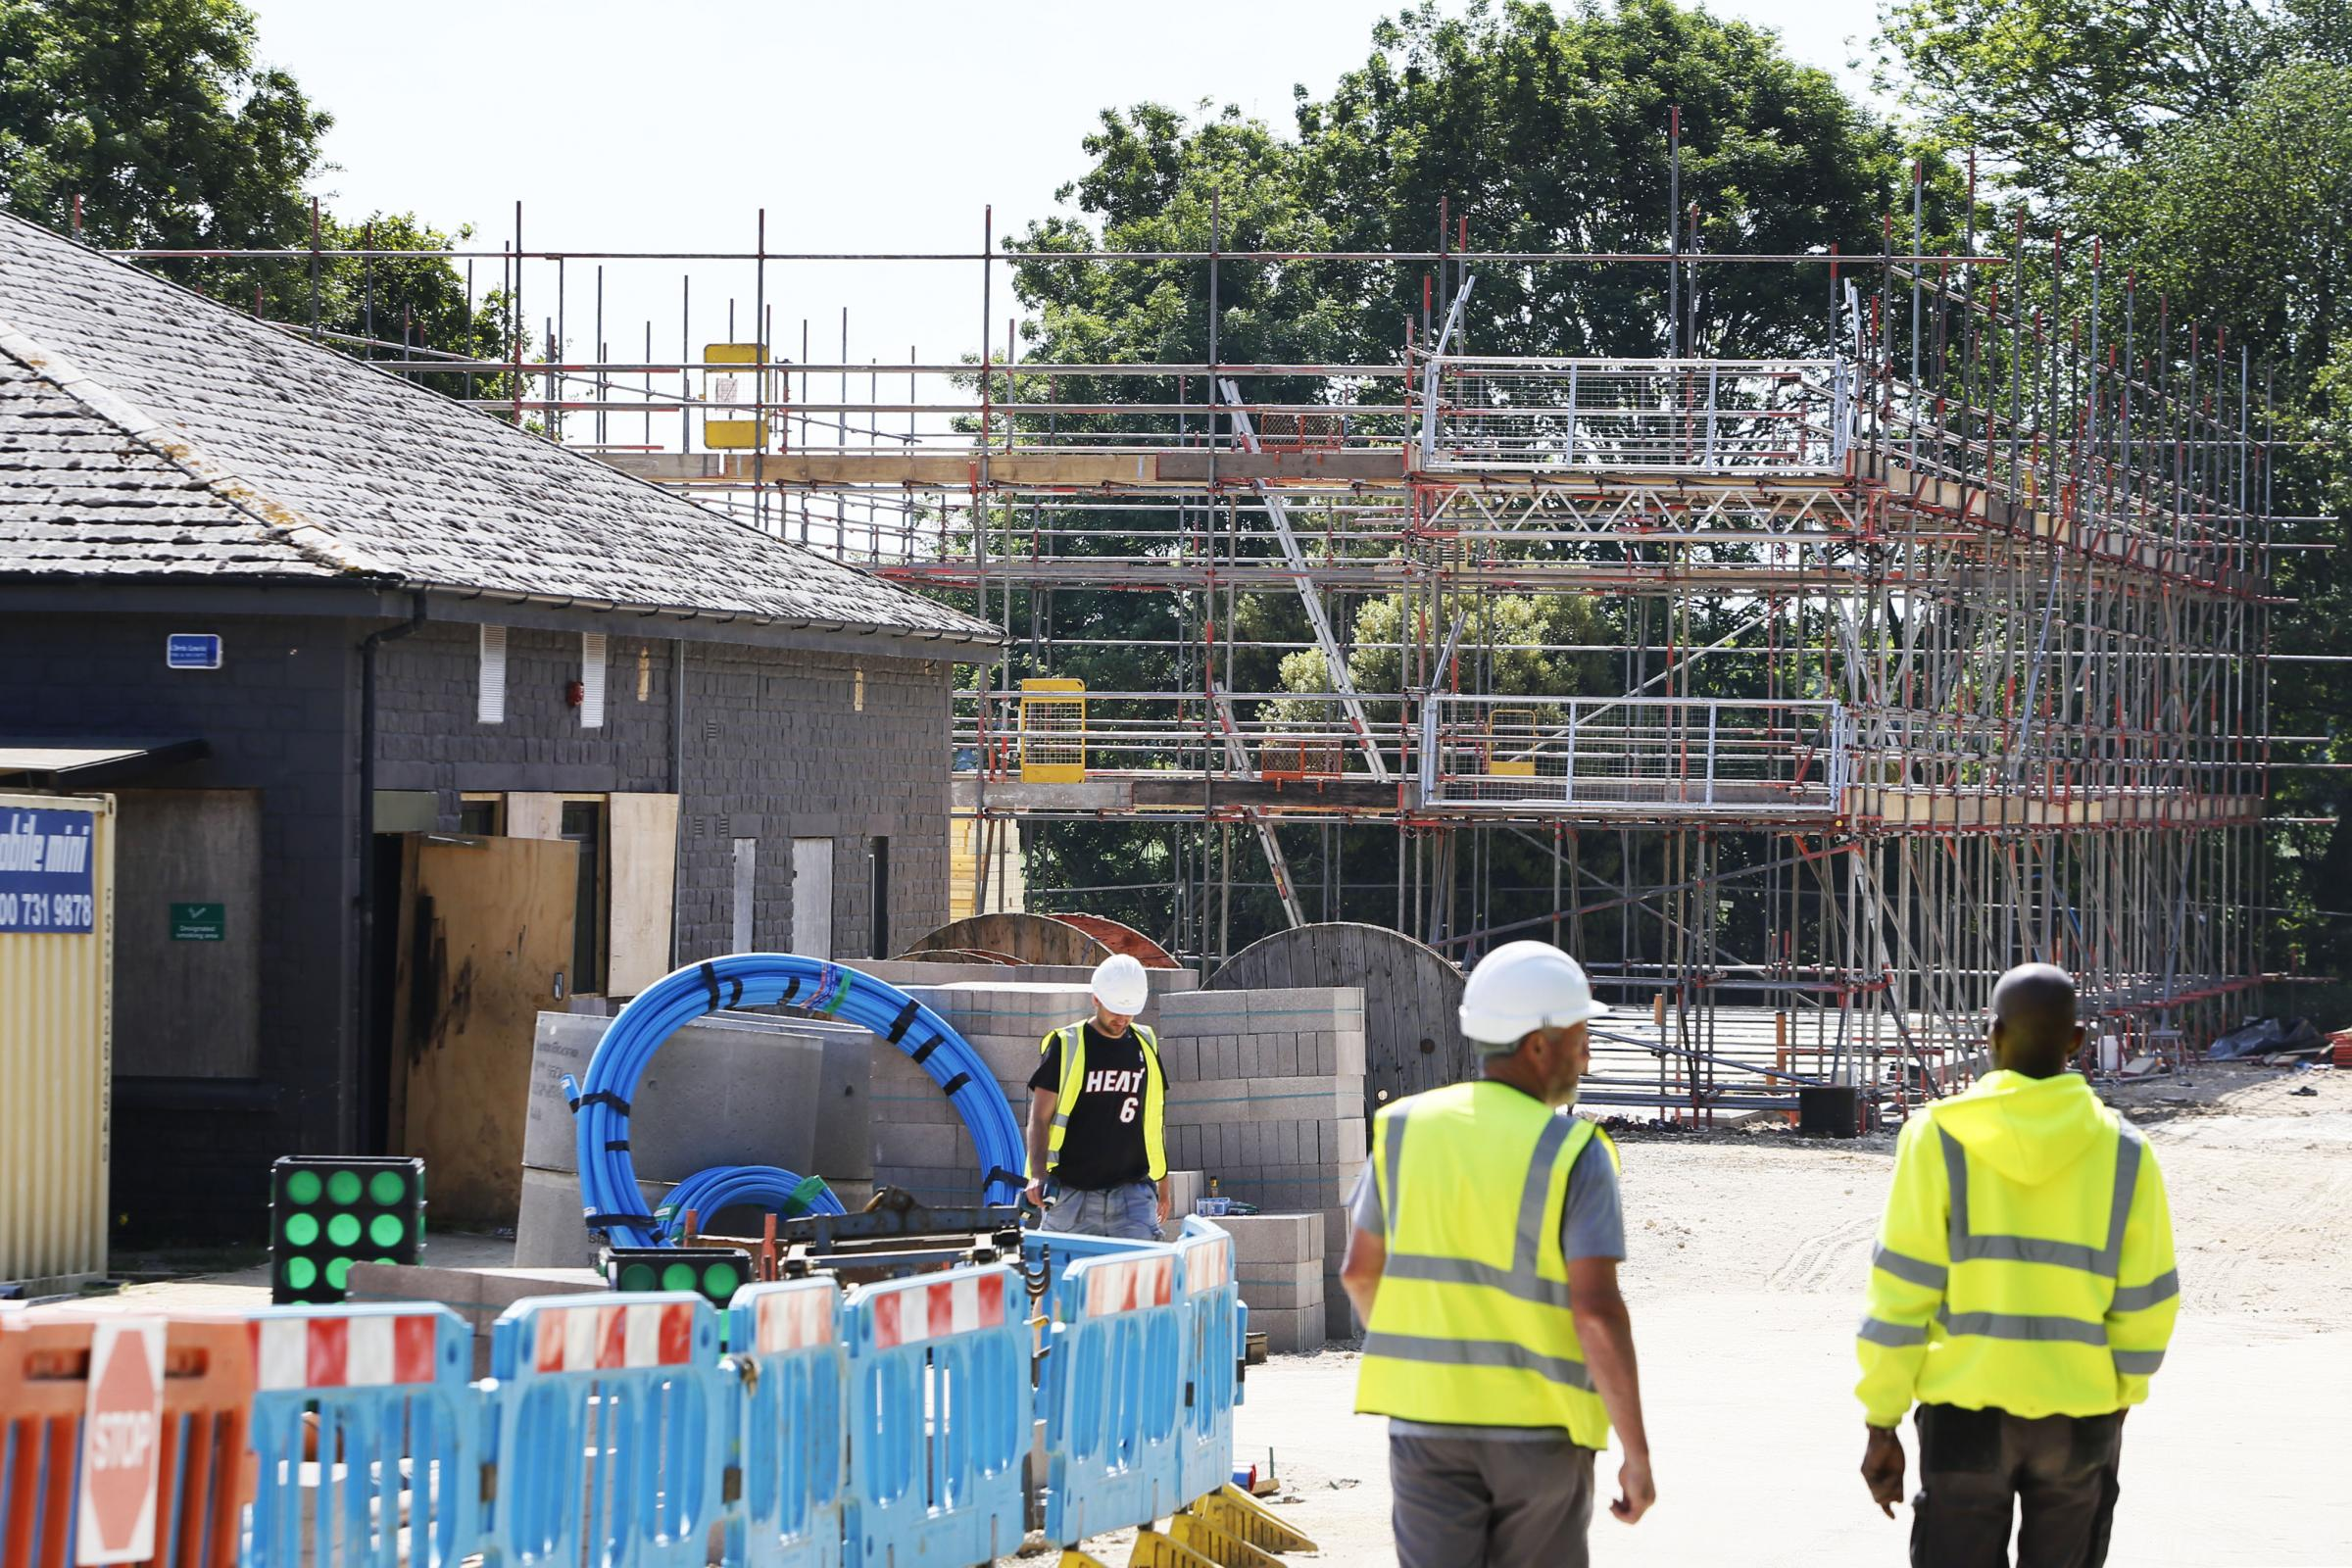 EXCLUSIVE: Work begins in earnest on the new Soho House motel at Buckland service station near Faringdon. Picture: Ed Nix